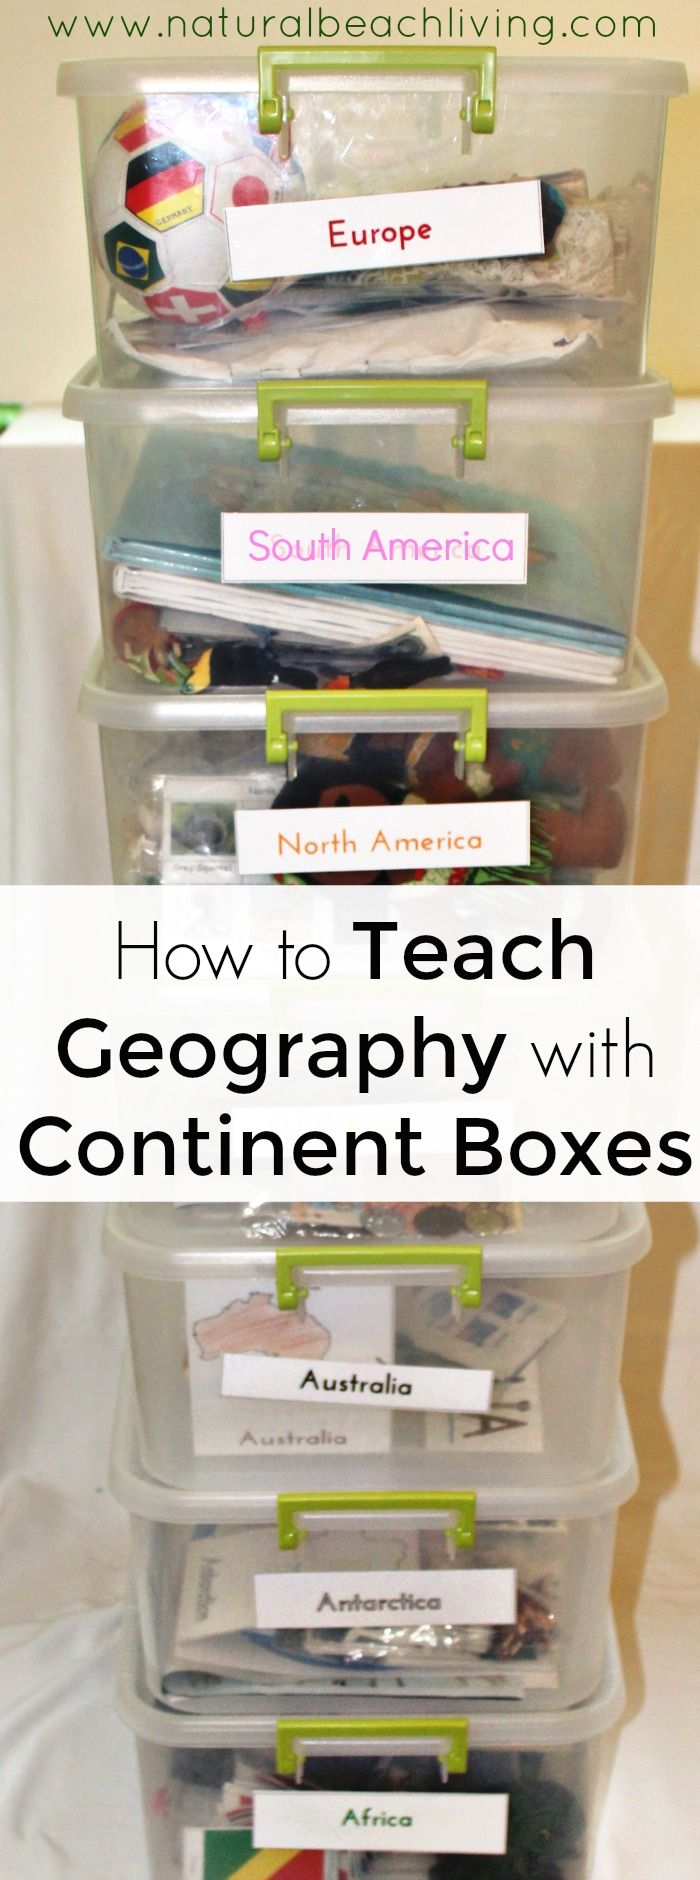 How to Teach Geography with Continent Boxes, DIY Montessori Continent Boxes, A multi-sensory approach to learning with kids, Multi-Culture ideas with kids